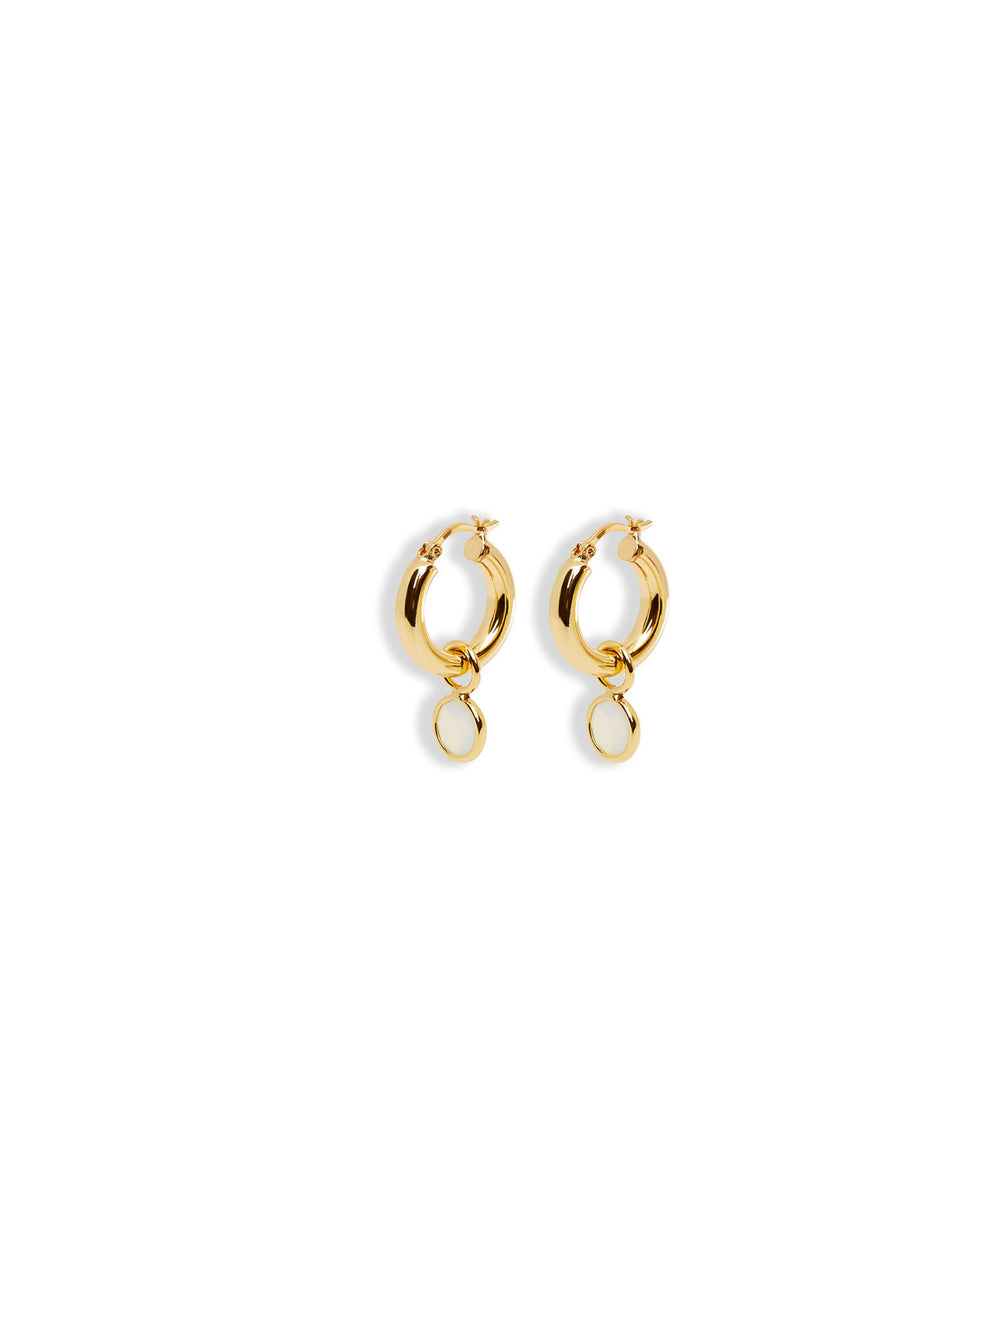 THE RUTH GOLD OPAL DROP EARRING (ALEXANDER ROTH X THE M JEWELERS)